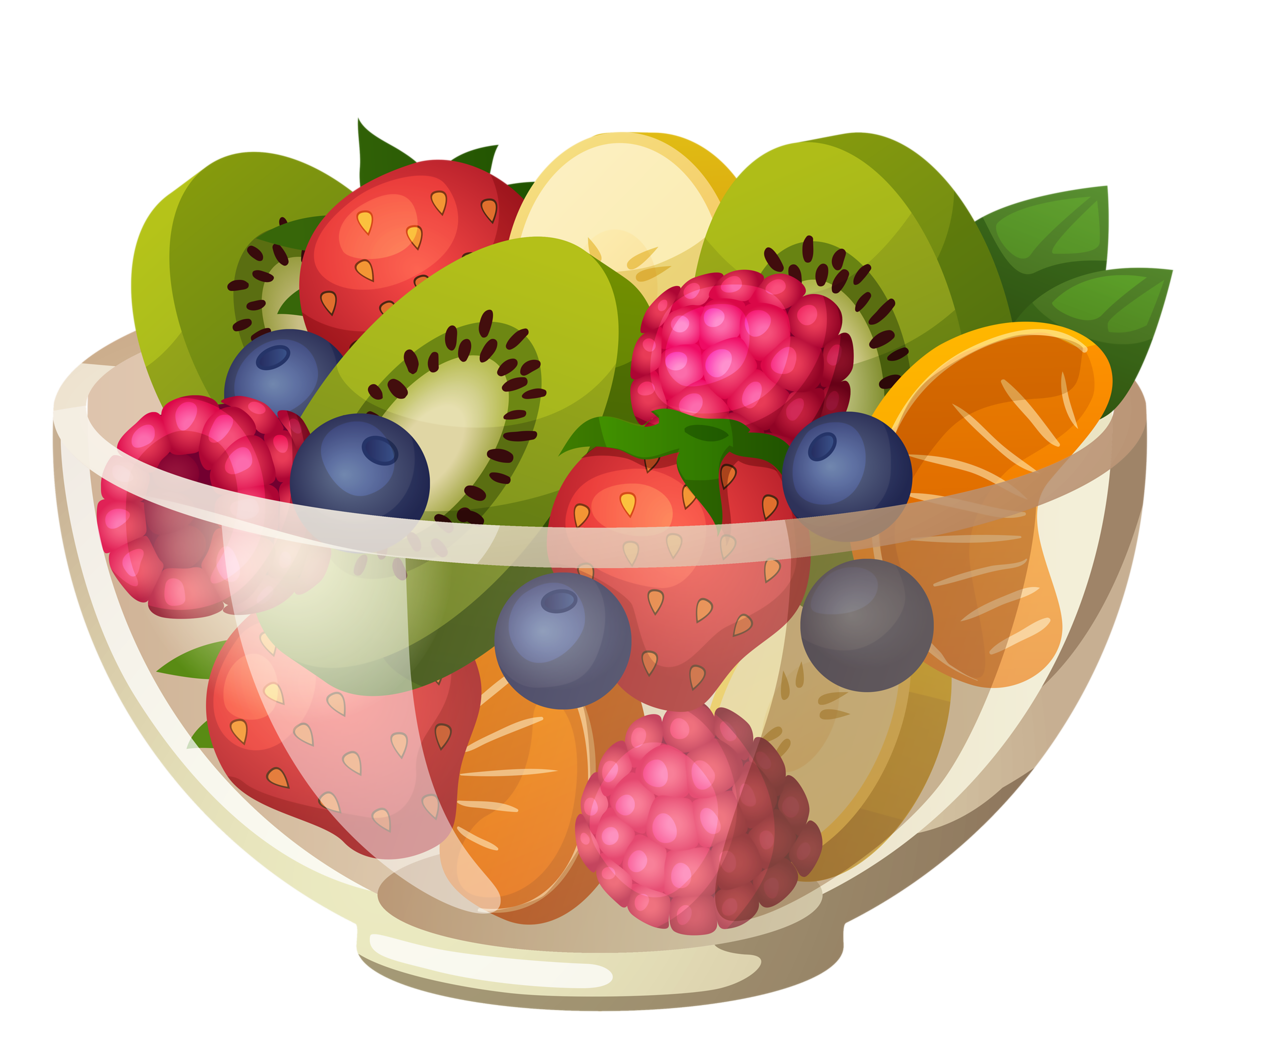 Transparent bowl fruit. Shutterstock png clip art